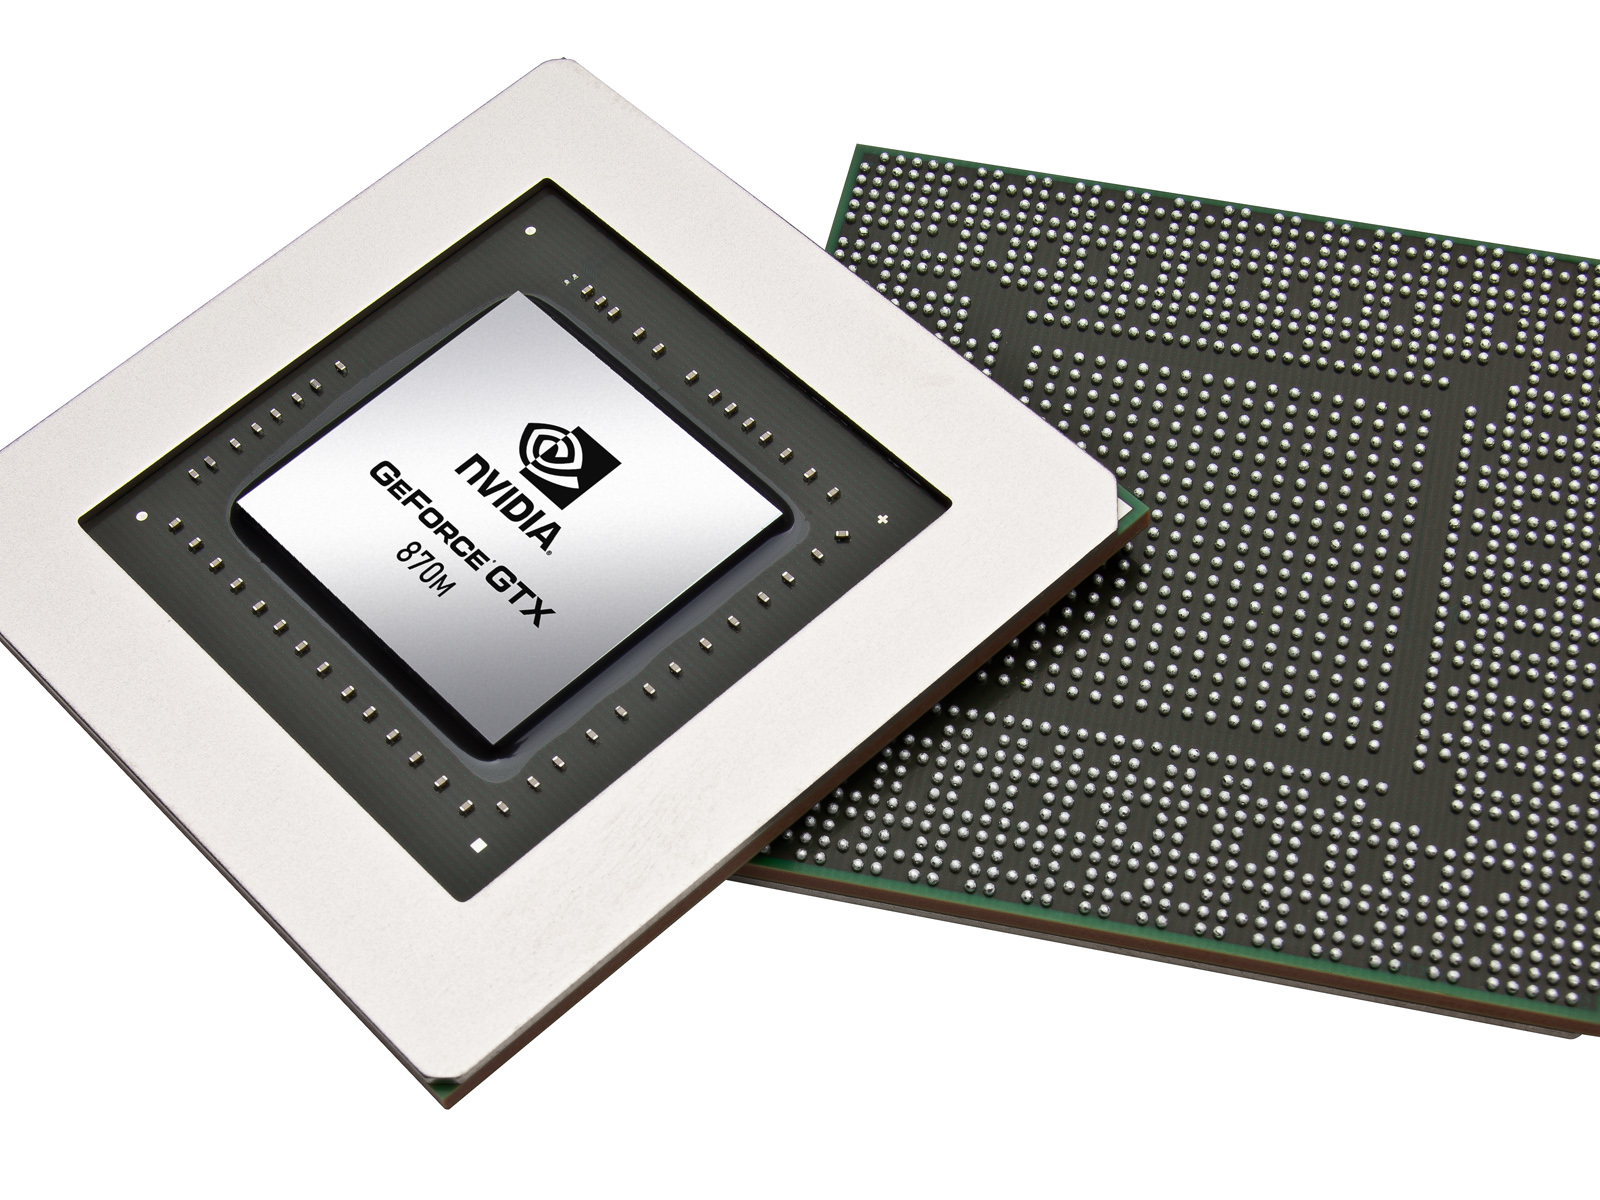 Nvidia geforce gtx 870m notebookcheckfo nvidia geforce gtx 870m stopboris Image collections